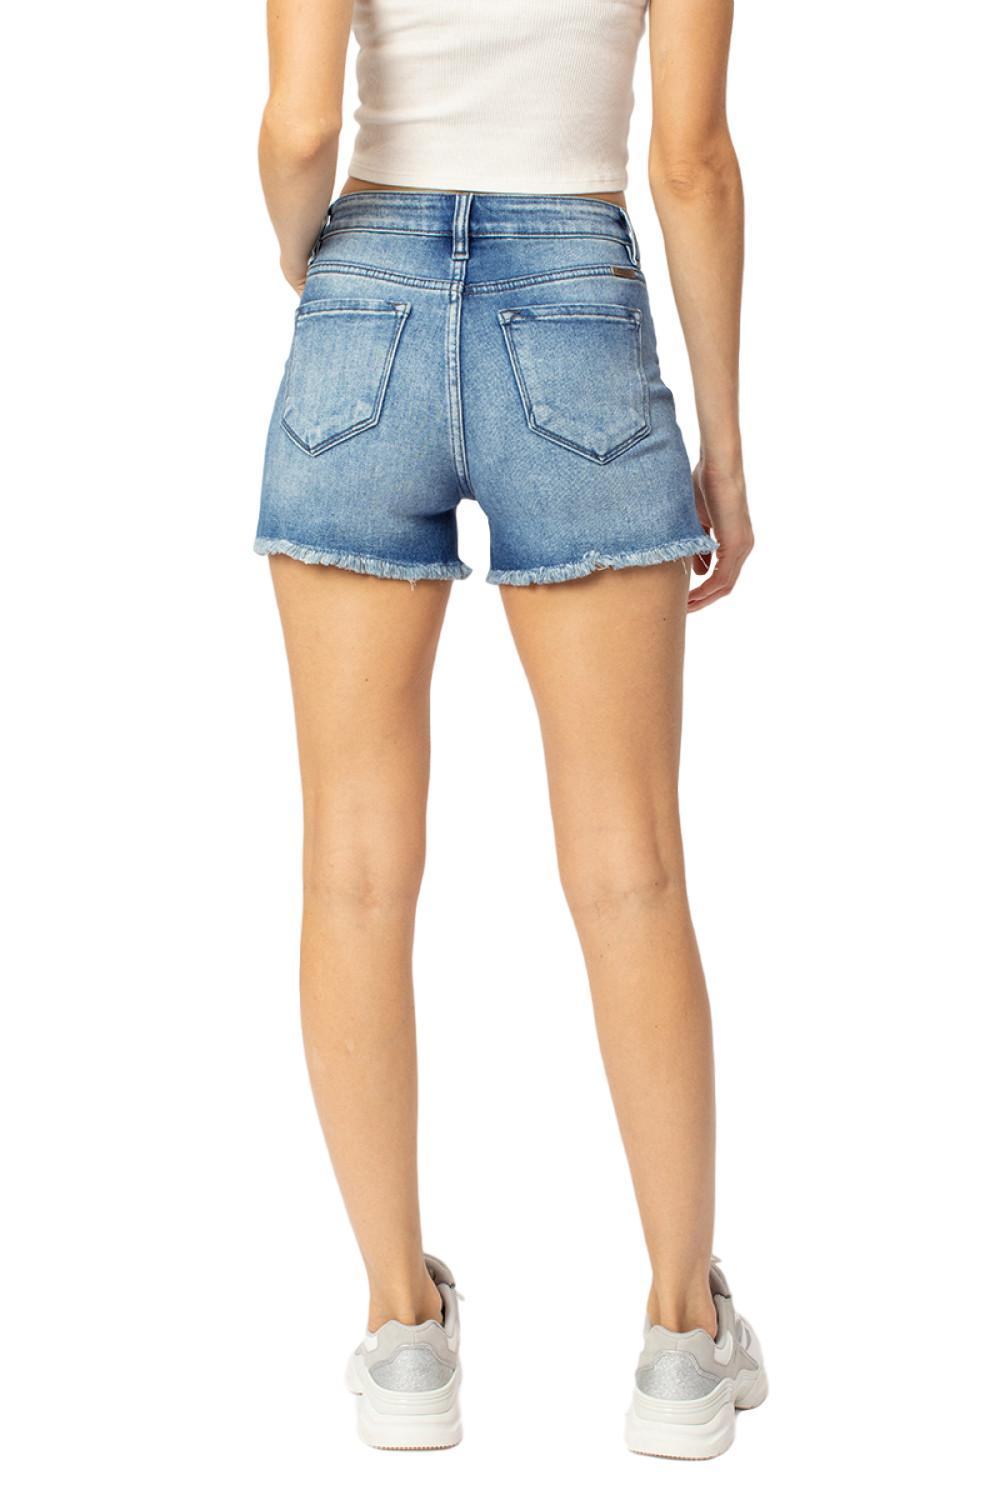 "Frayed High Rise Shorts  By Kan Can  Collection: Spring 2020 Frayed Hem Shorts High Rise waist, 9.5"" Front Rise Shorts, 3.5"" Inseam Medium Wash Material: 93% COTTON, 5% POLYESTER, 2% SPANDEX Stitching: Classic Fly: Zipper Style #: KC9212M  Contact us for any additional measurements or sizing.  True to size per manufacture standard  Kan Can  Size Guide: X-Small= 24/0 Small = 25/3 Medium = 26/5-27/7 Large = 28/9 X-Large 29/11-30/13"